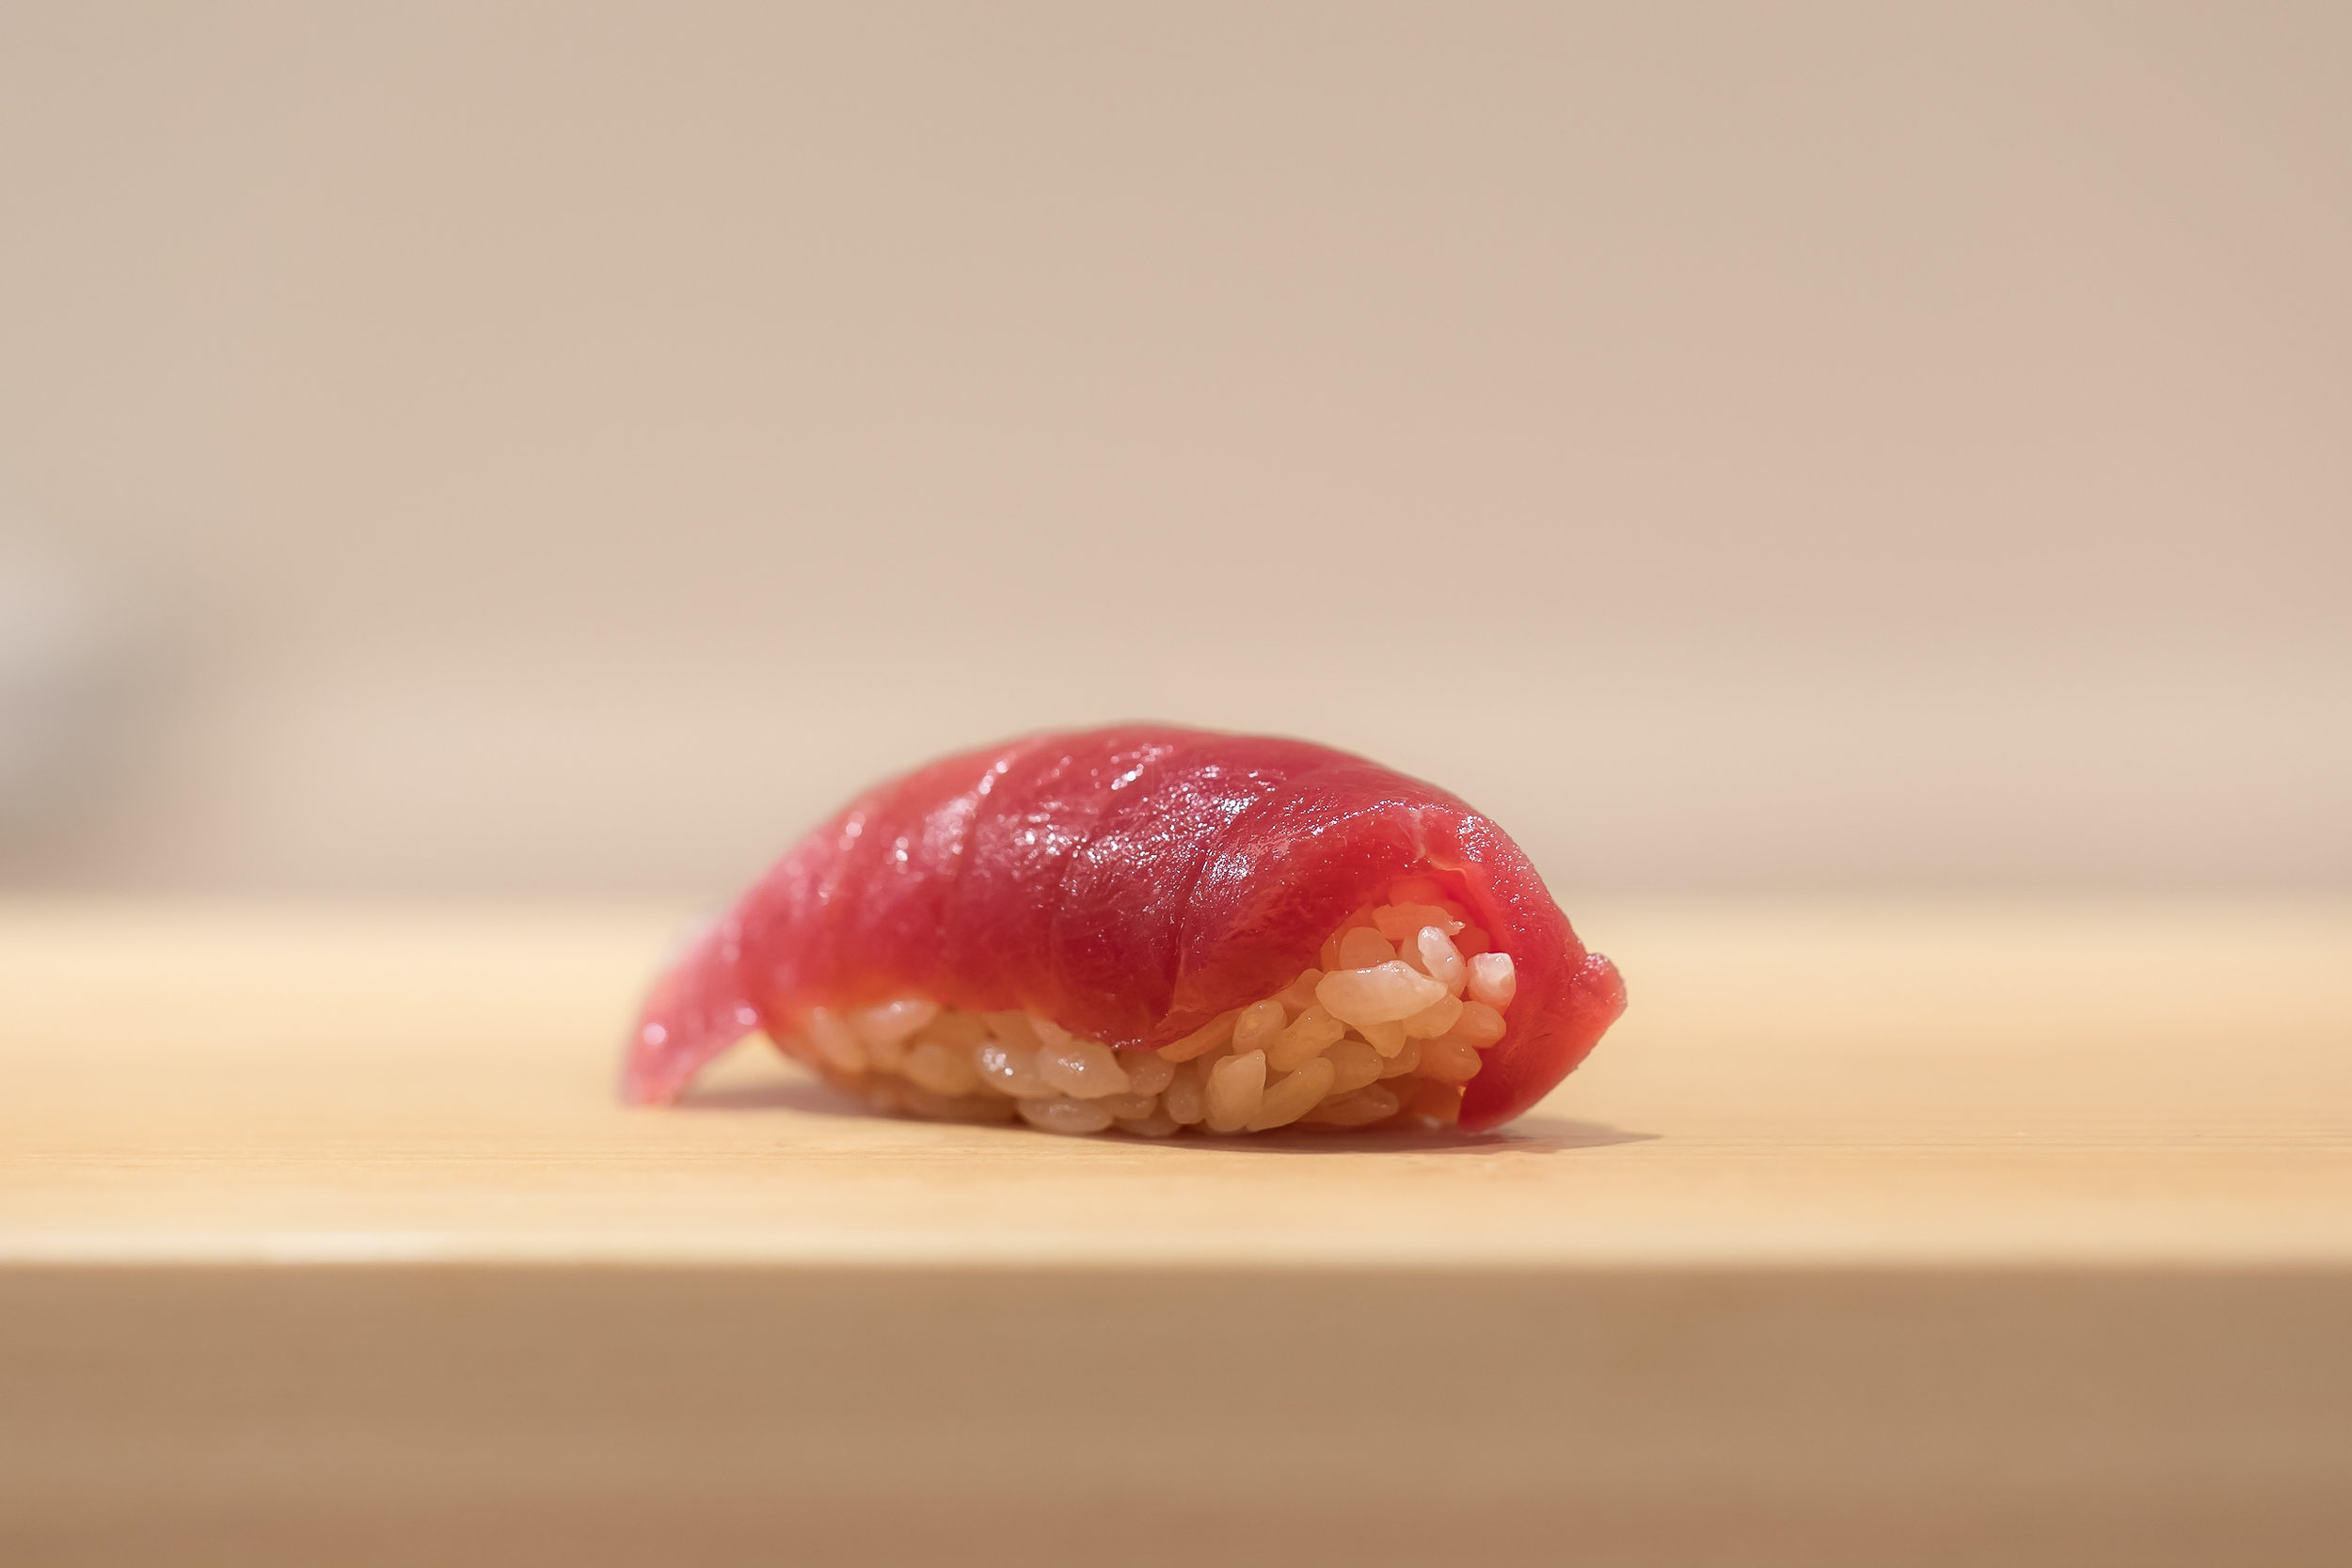 5. Red muscles of Chutoro